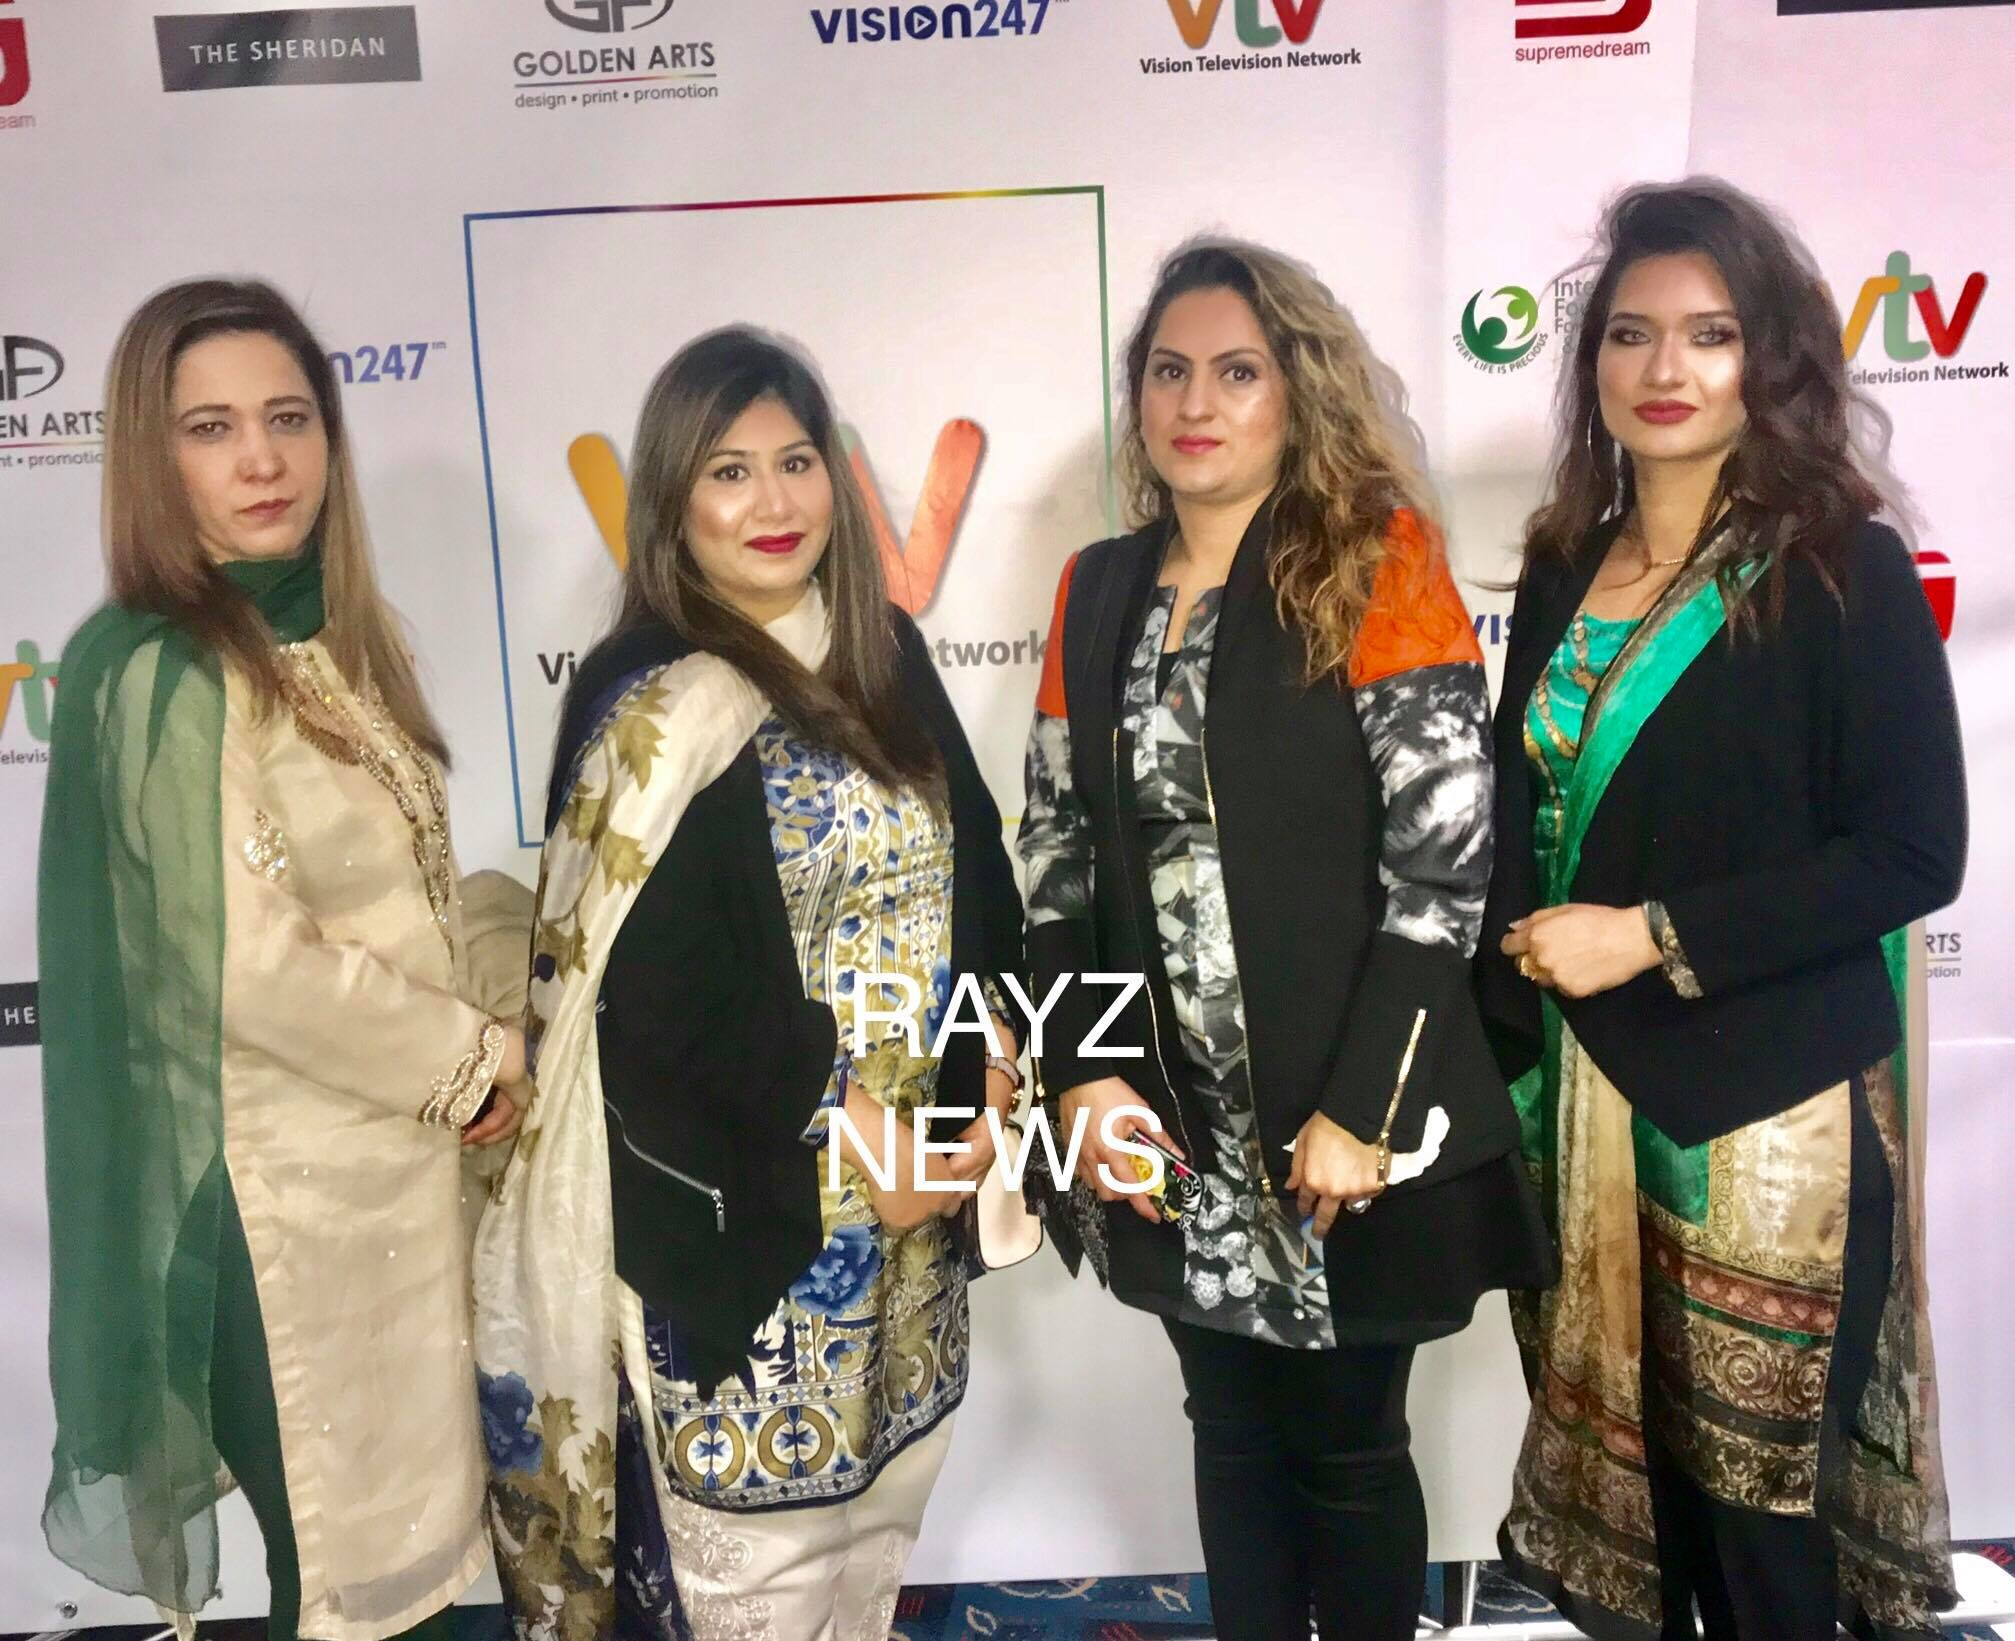 VTV Launch Party with Pakistani Film Stars Drama Artist and Singers